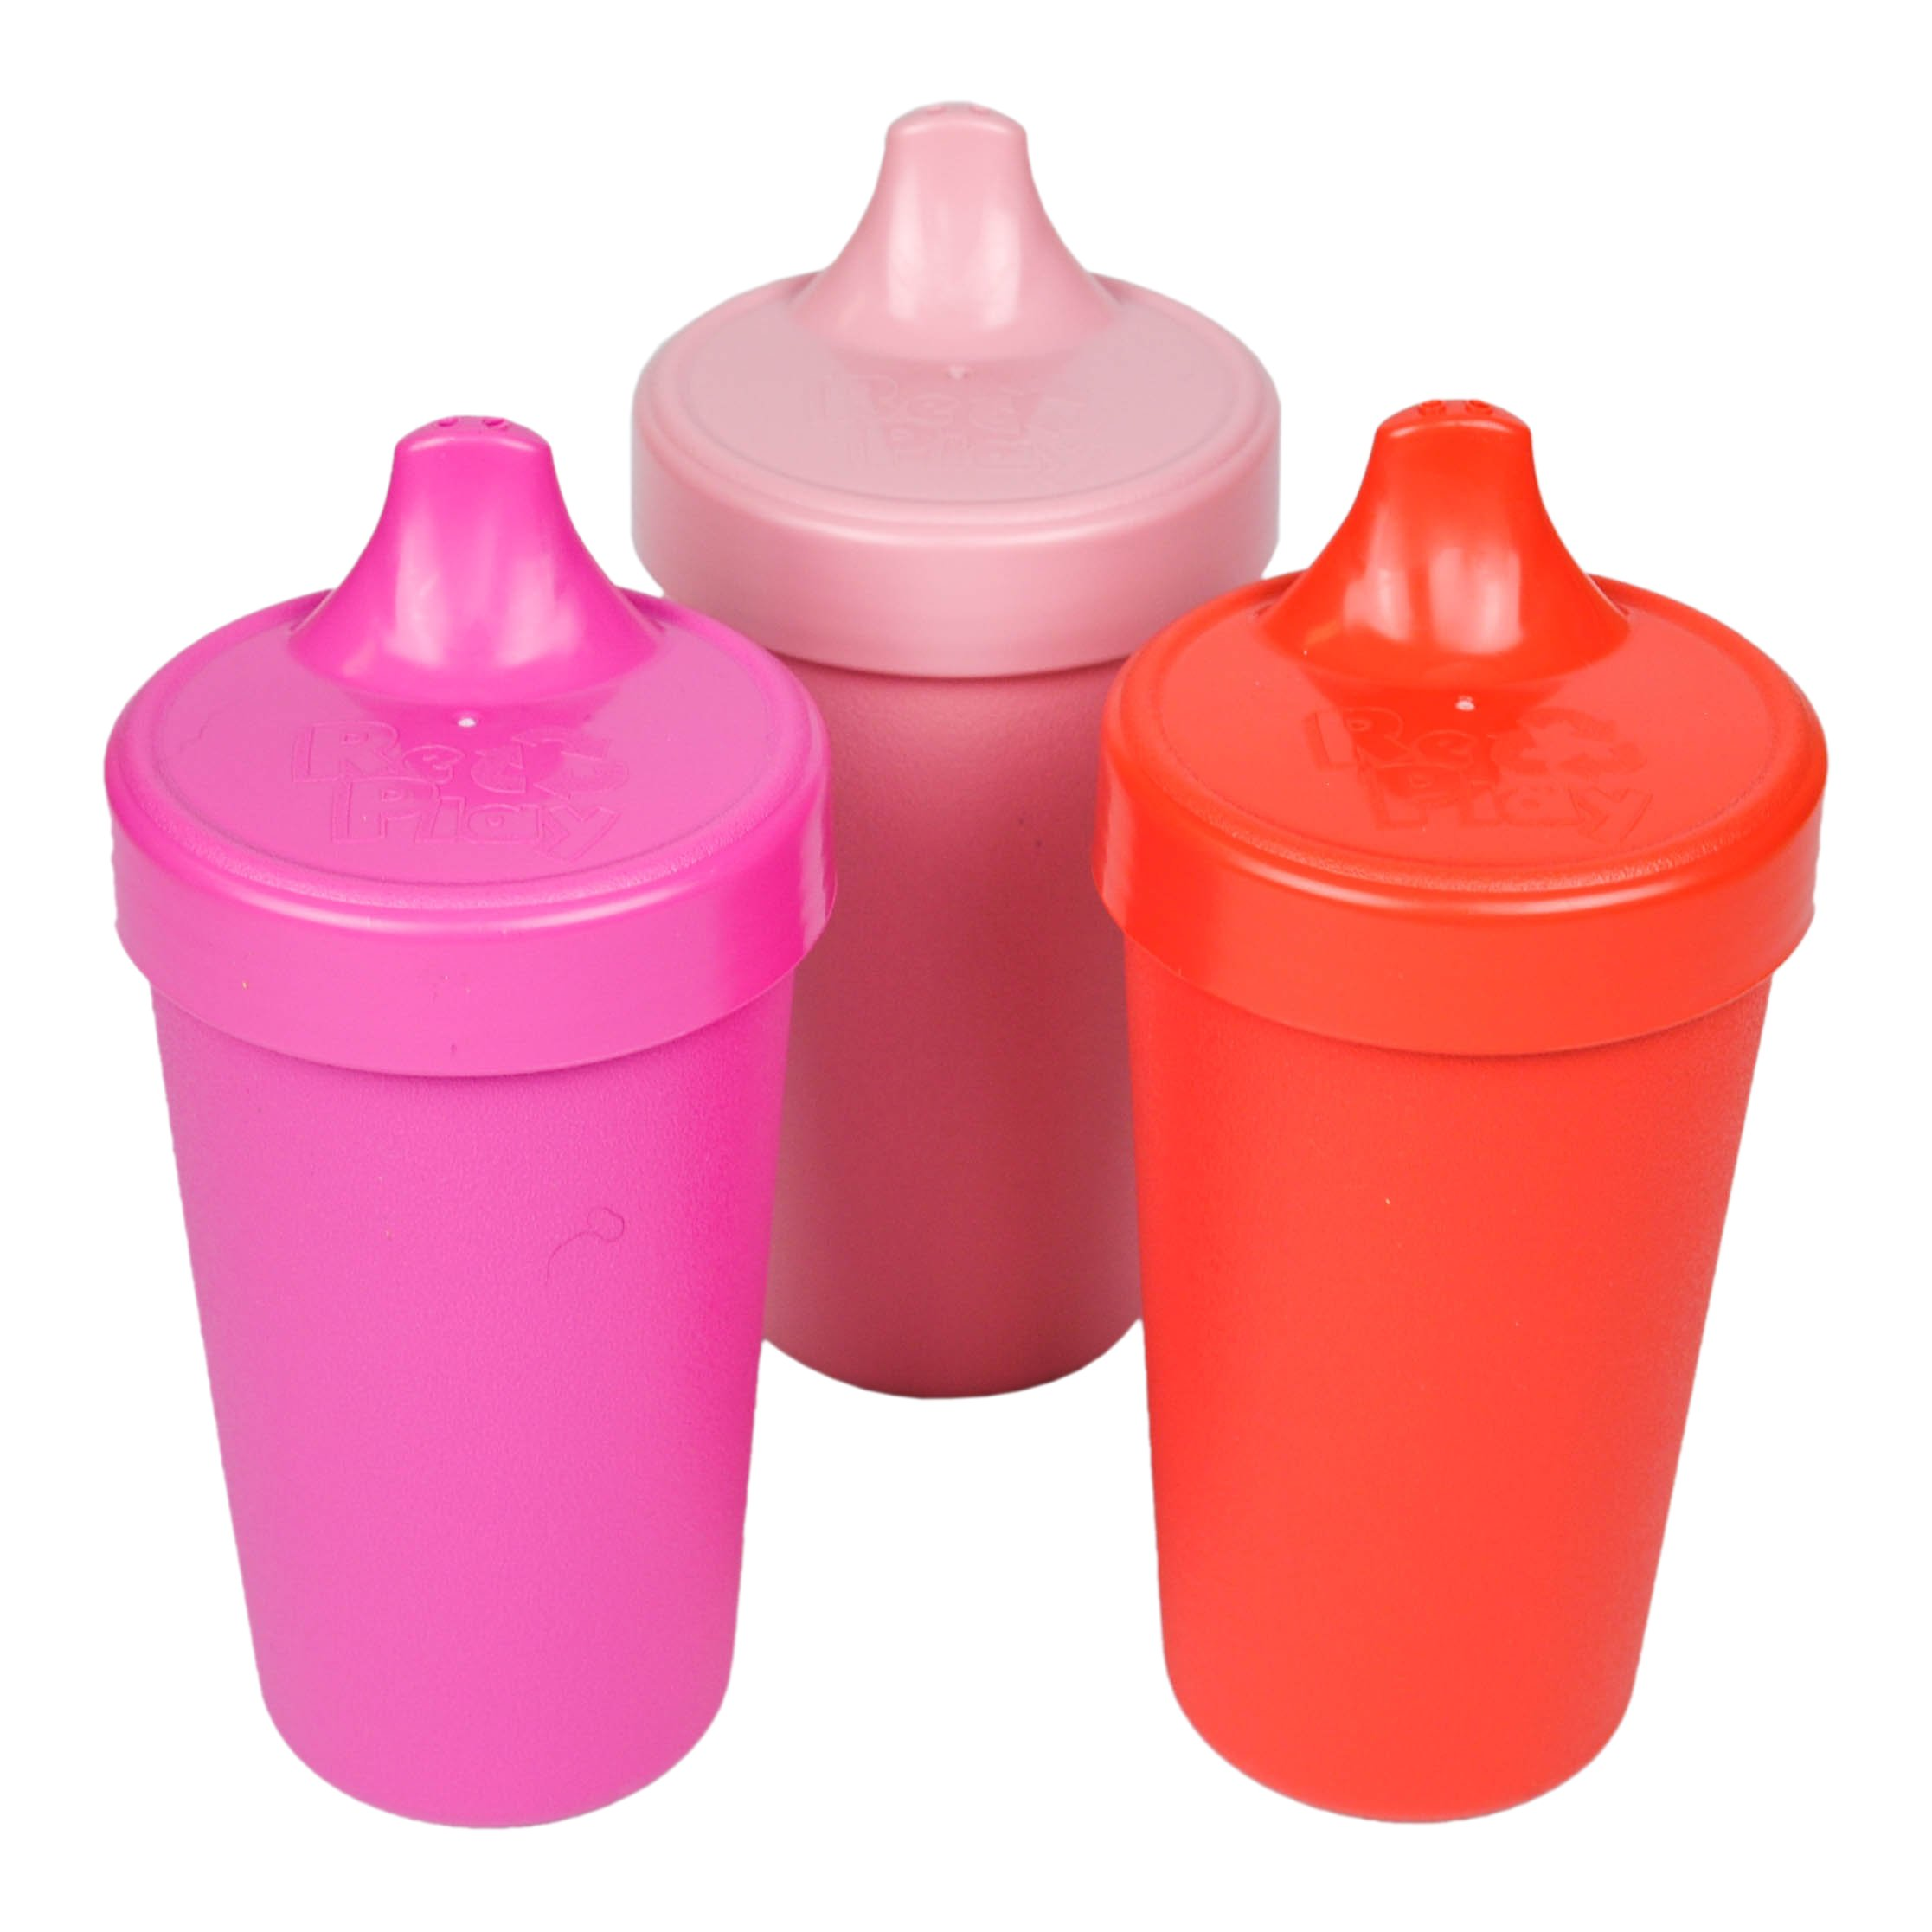 Re-Play Made in the USA 3pk No Spill Sippy Cups for Baby, Toddler, and Child Feeding - Bright Pink, Baby Pink, Red (Valentine)